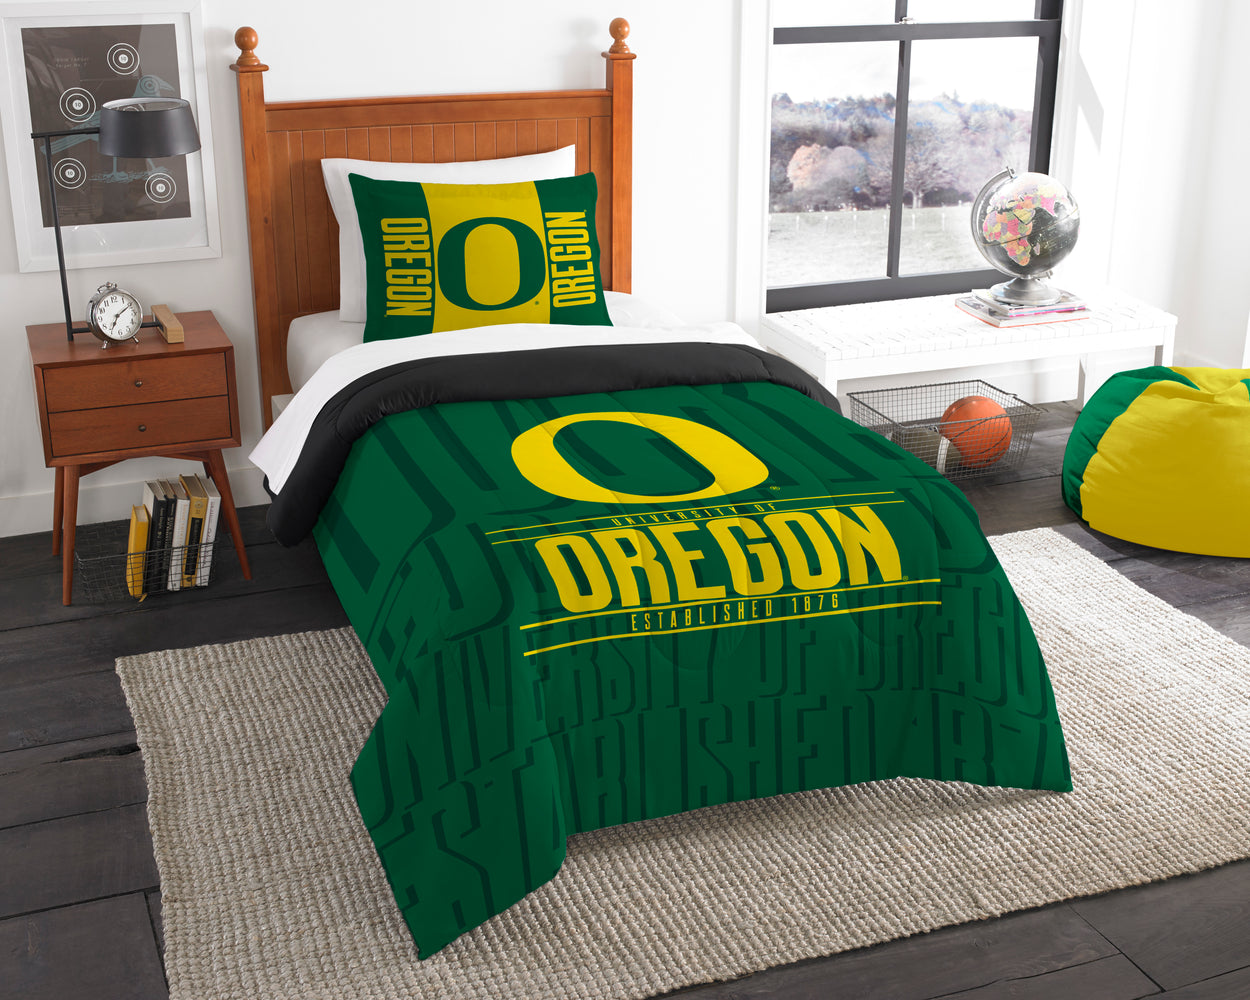 "Oregon OFFICIAL Collegiate, Bedding, """"Modern Take"""" Twin Printed Comforter (64""""x 86"""") & 1 Sham (24""""x 30"""") Set  by The Northwest Company"